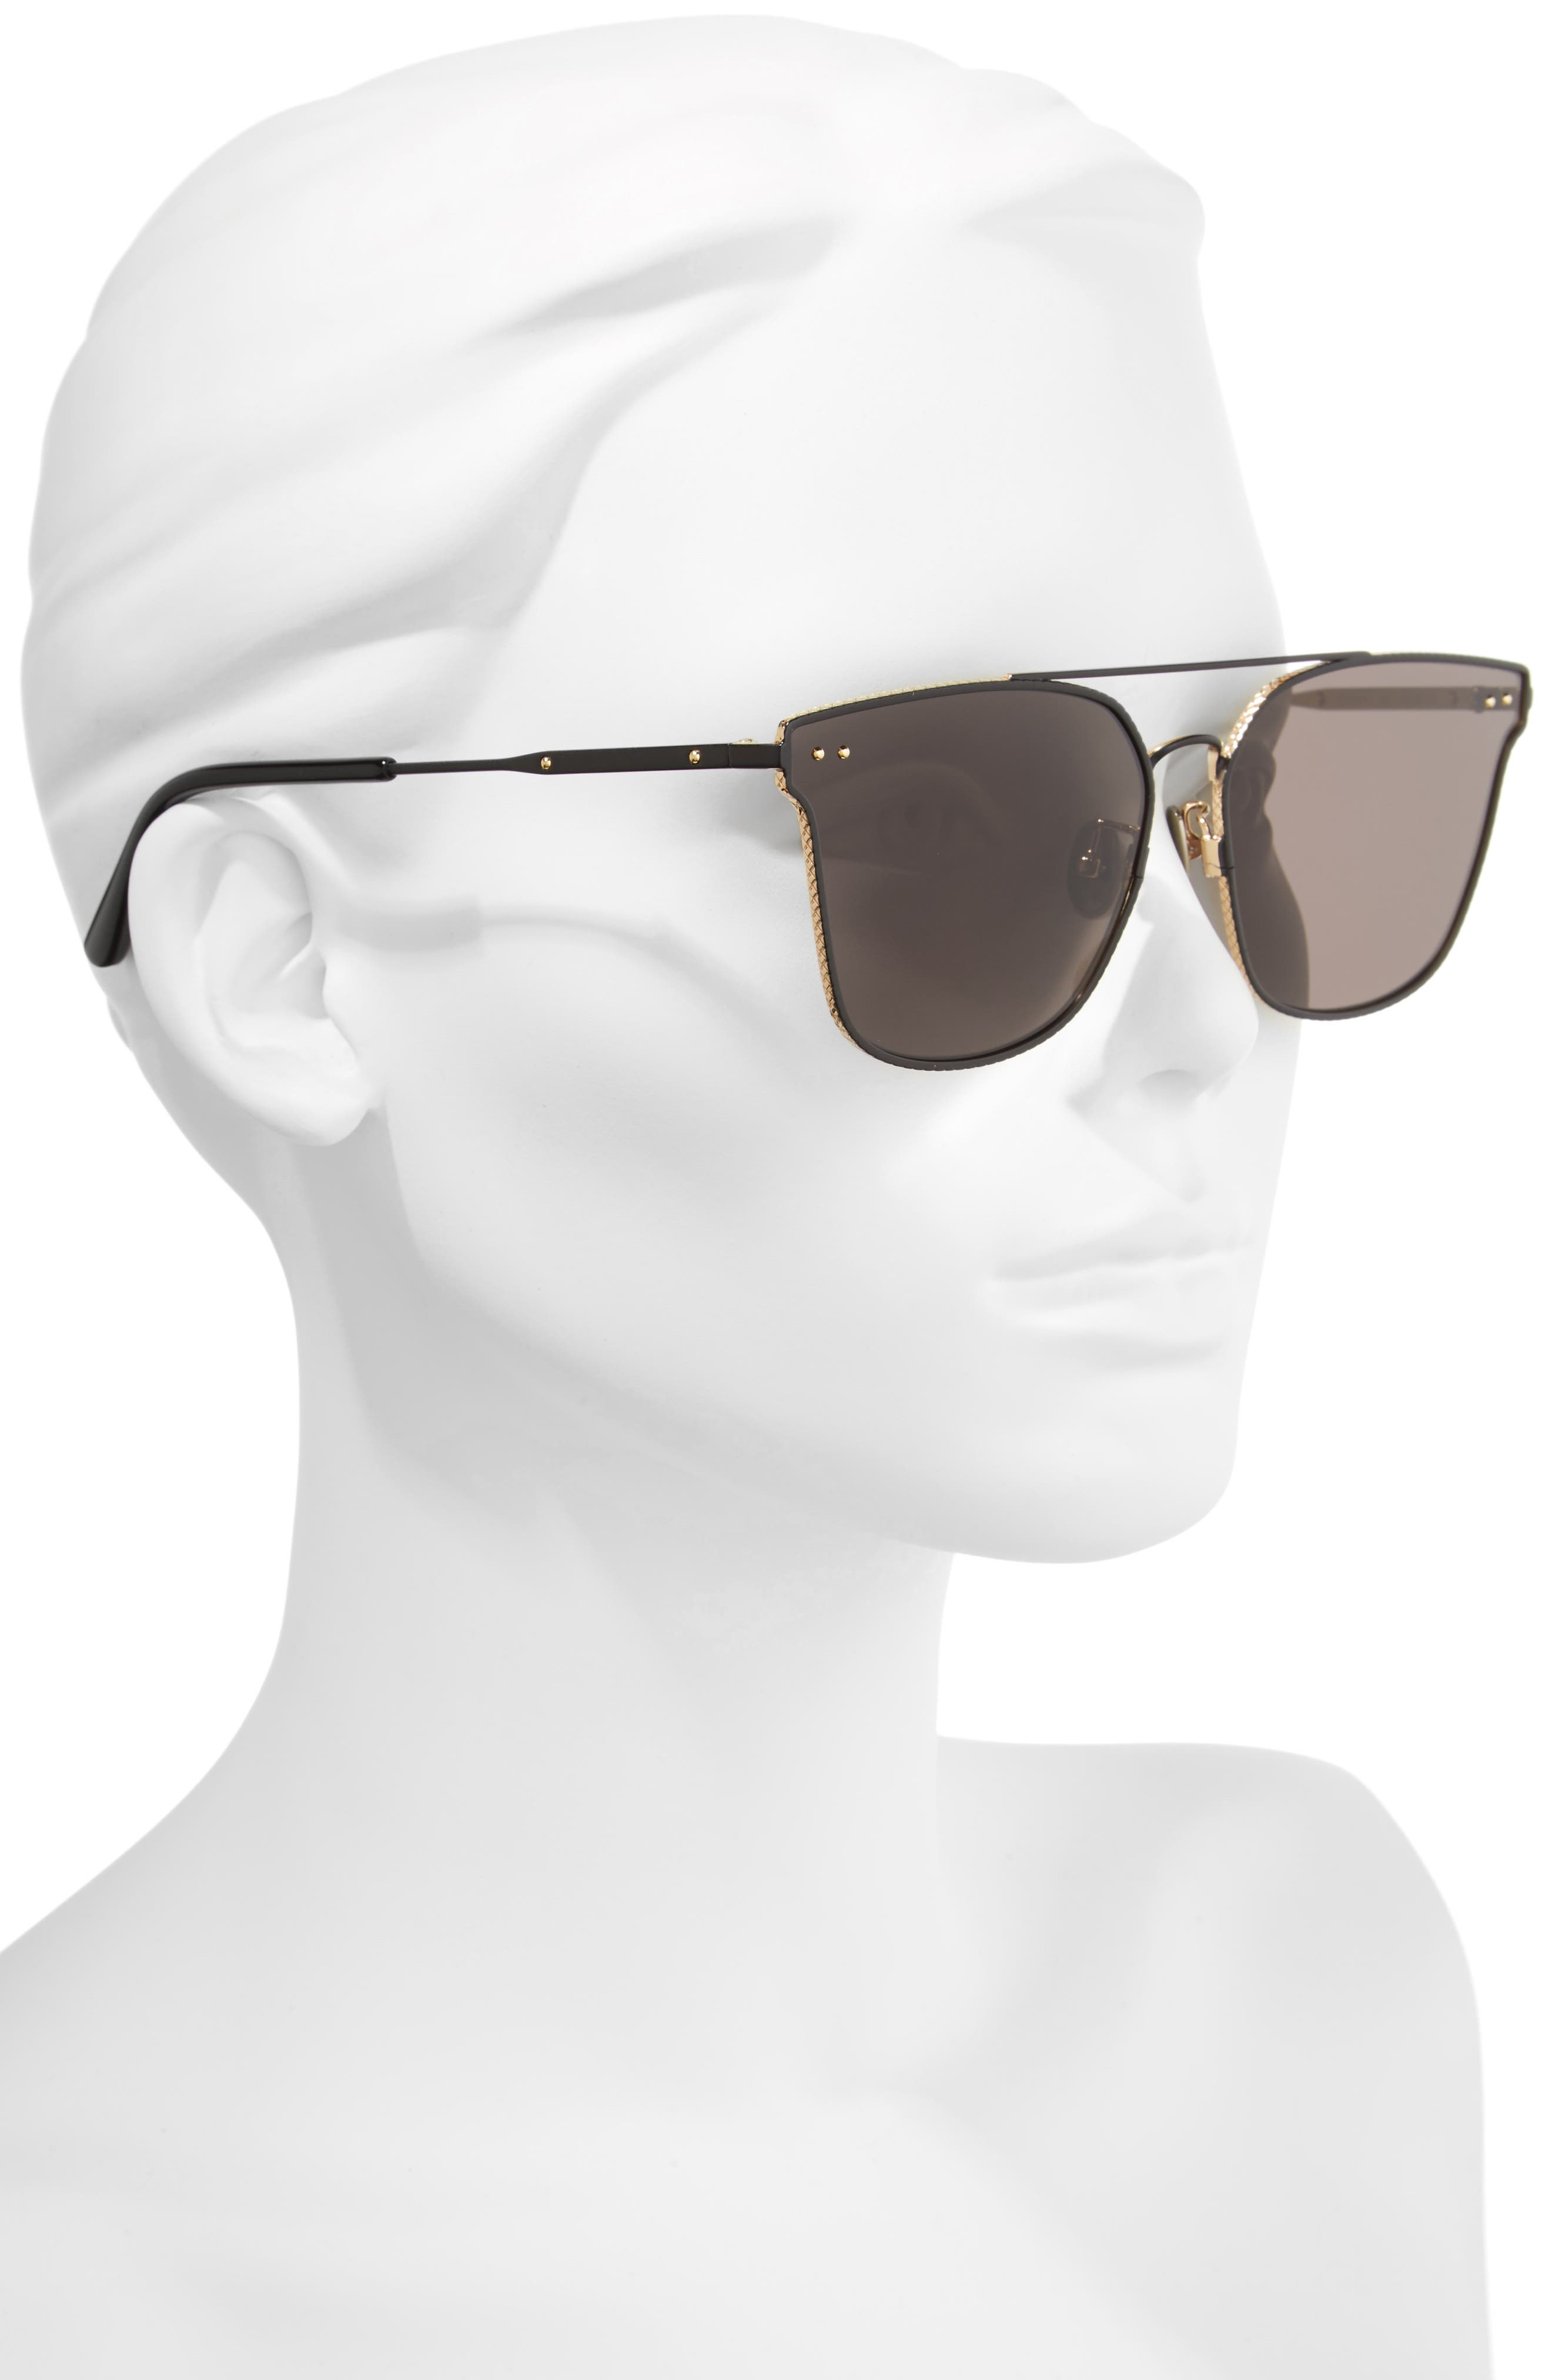 64mm Sunglasses,                             Alternate thumbnail 2, color,                             BLACK